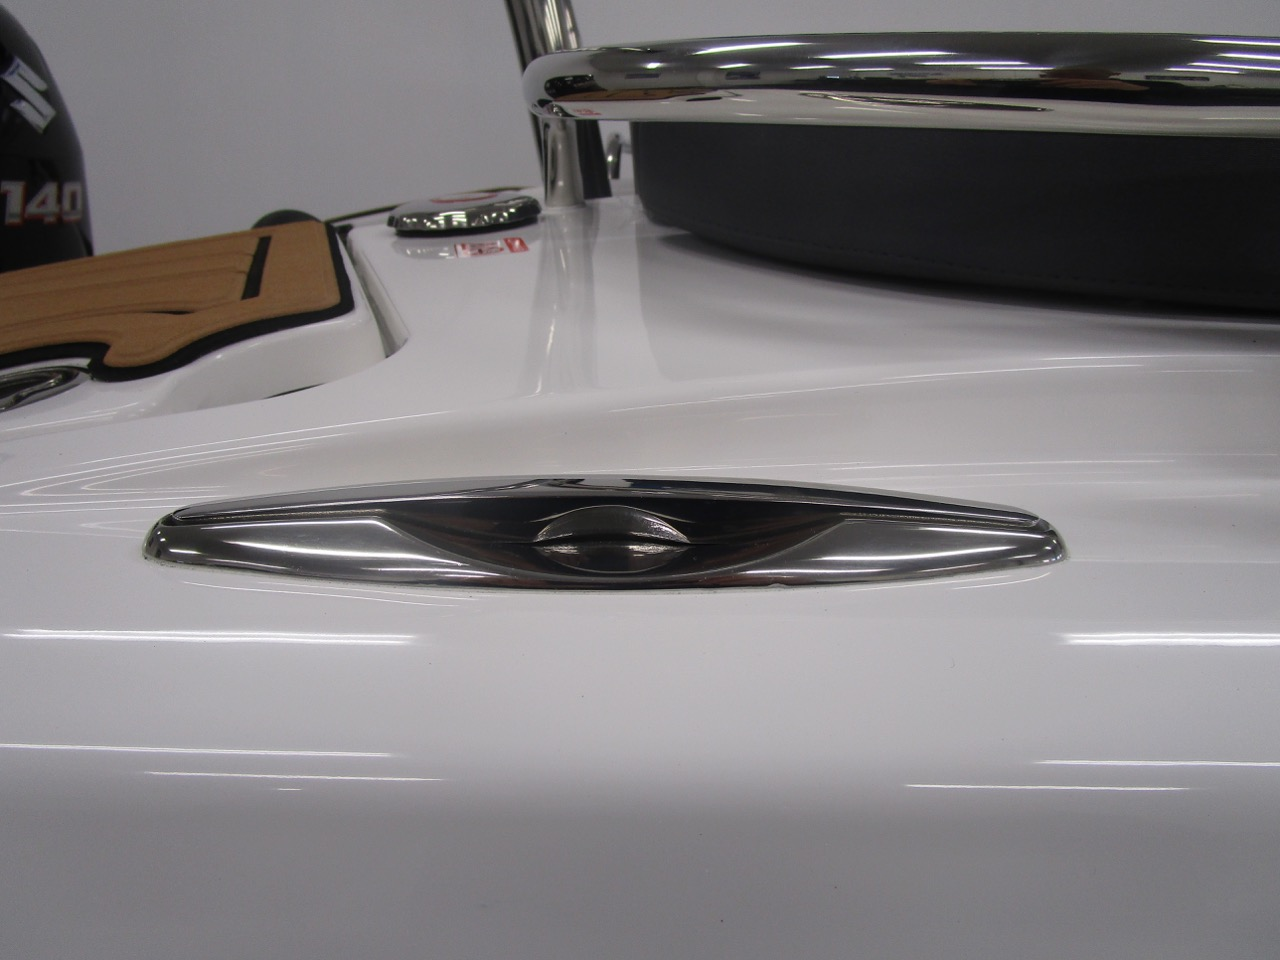 GRAND Golden Line G580 RIB rear cleat down